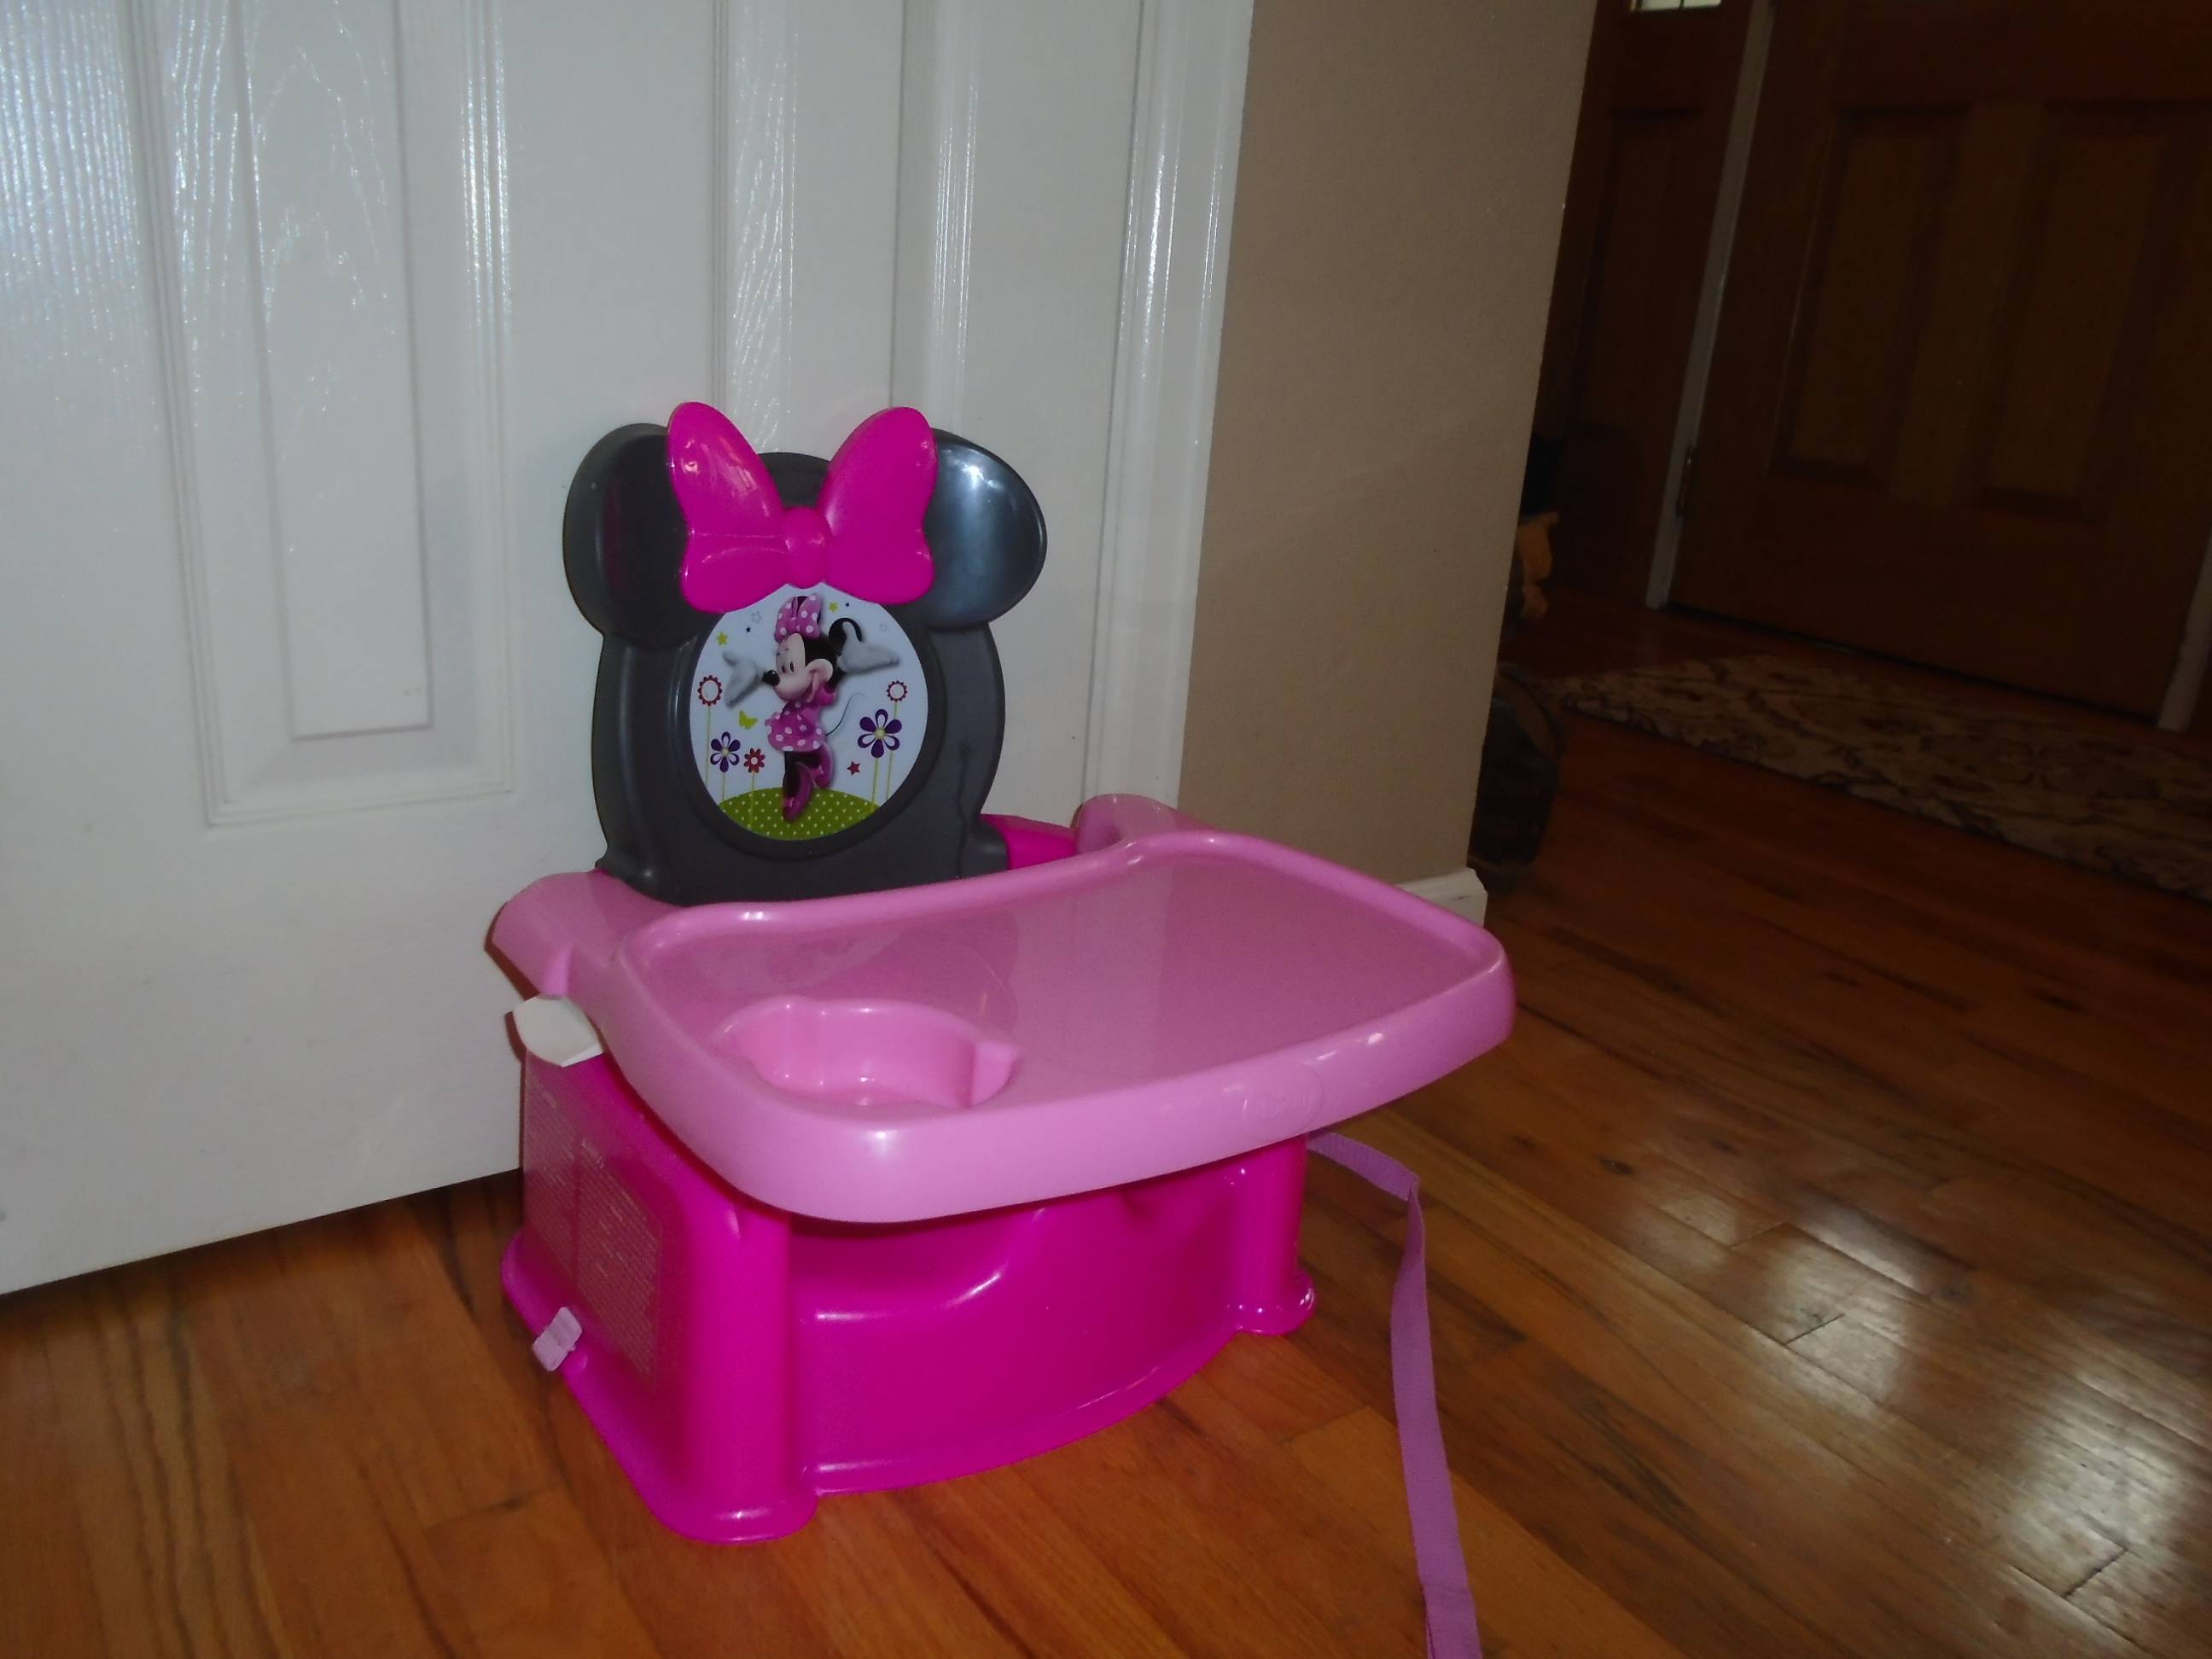 The First Years Minnie Mouse Booster Seat - $20